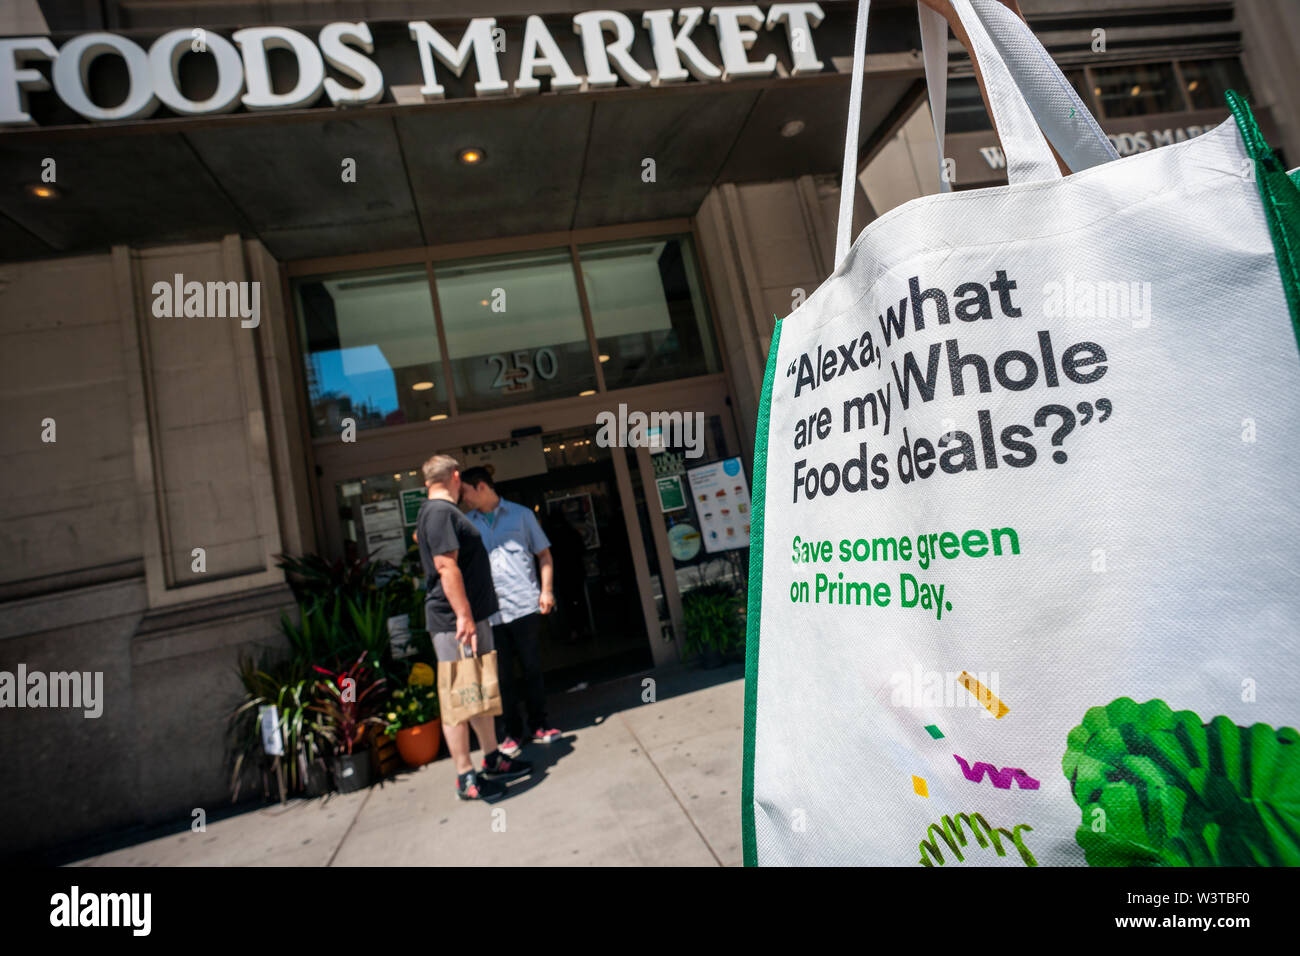 Whole Foods Bag Stock Photos & Whole Foods Bag Stock Images